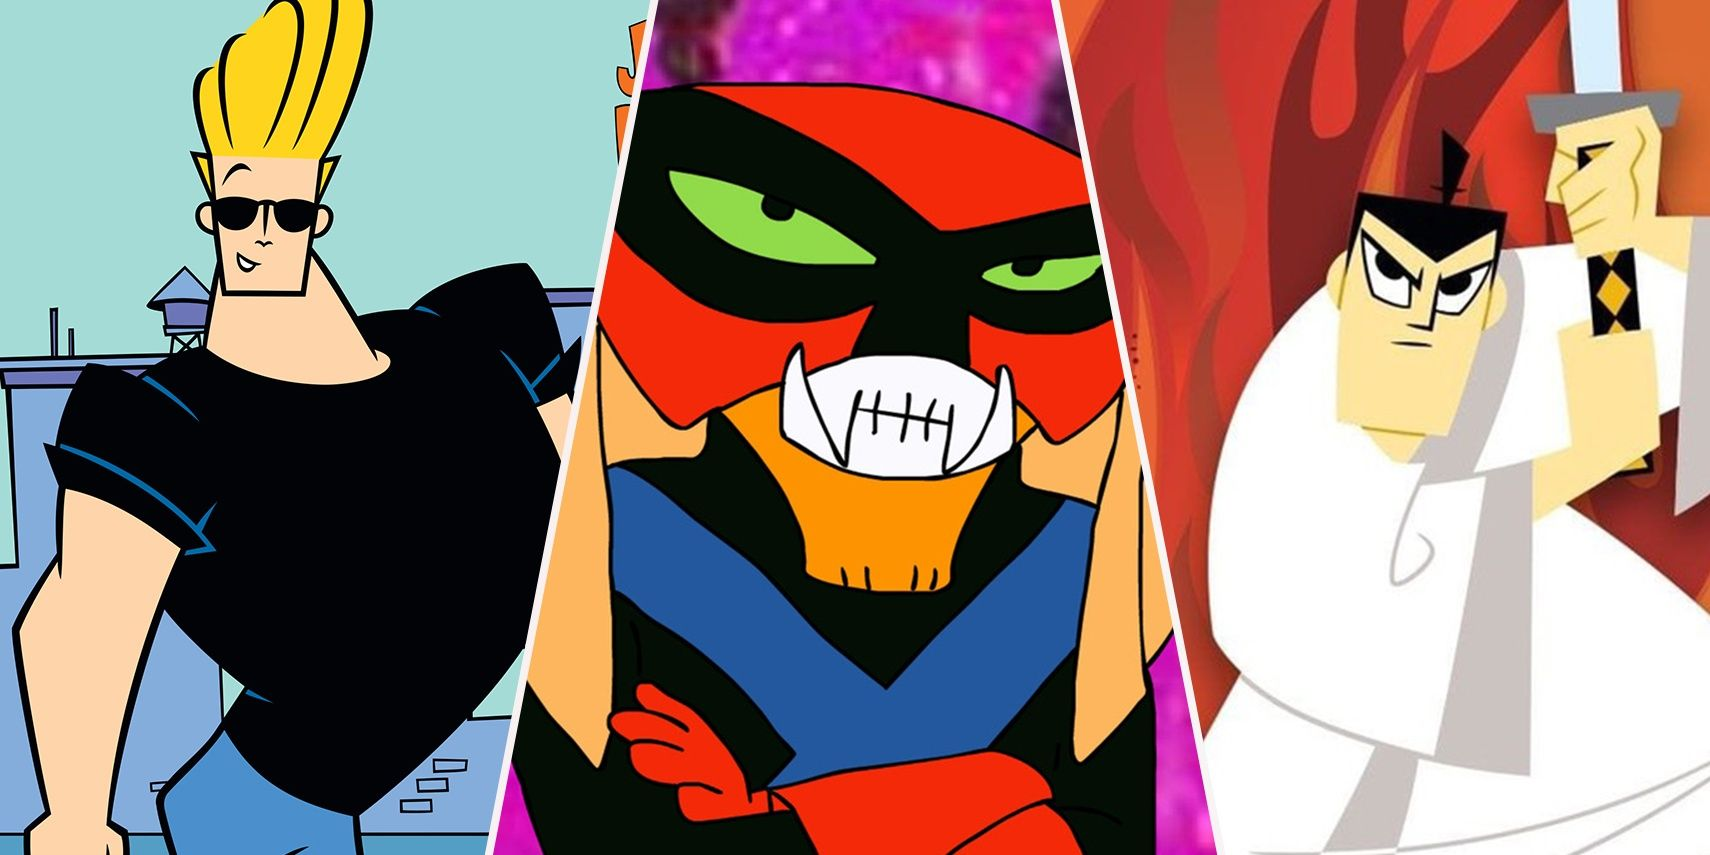 15 Best Cartoon Networks Shows From The 2000s Ranked According To Imdb